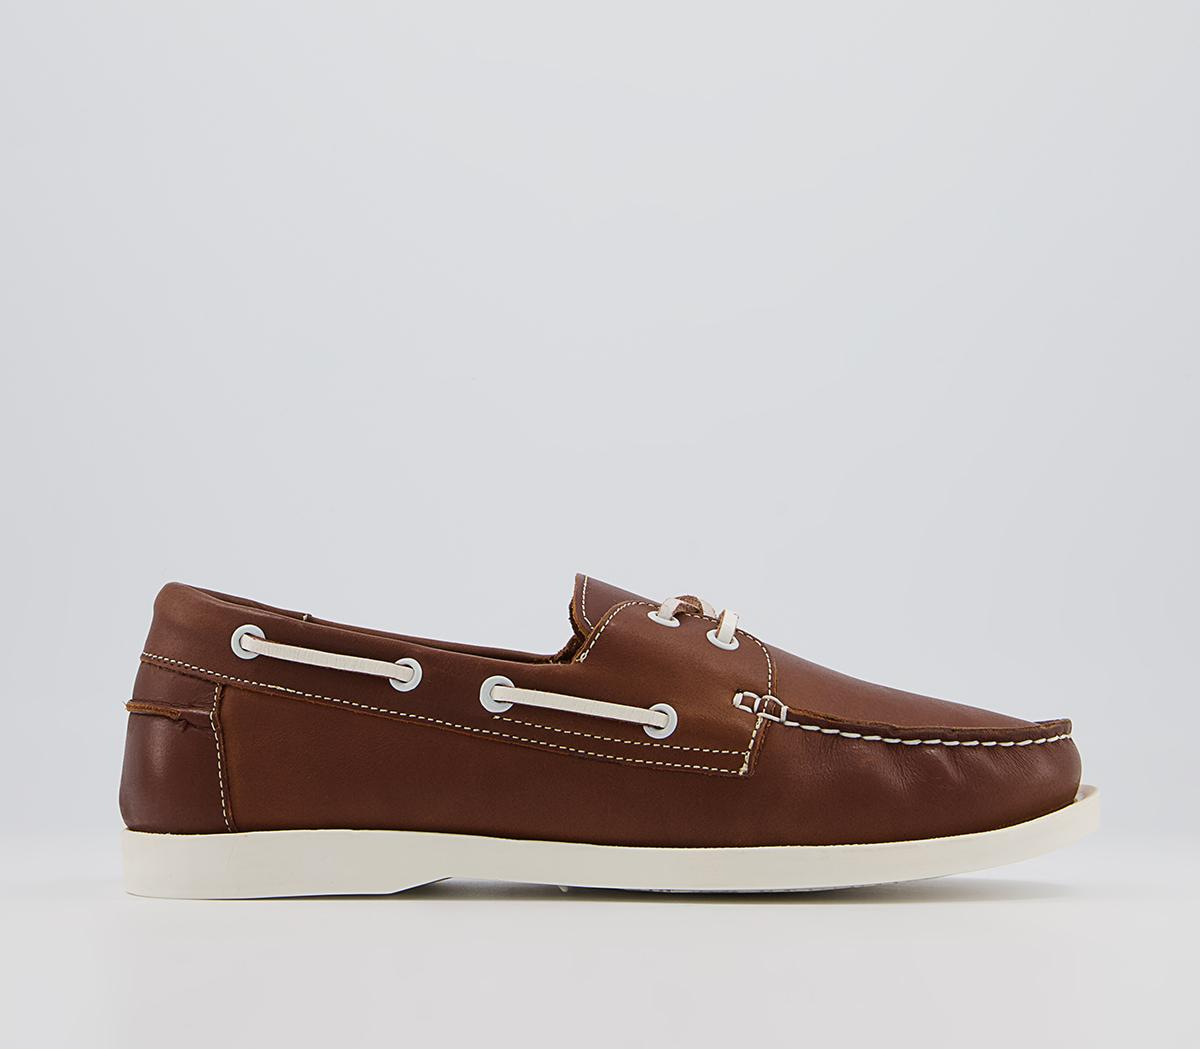 Cabin Boat Shoes